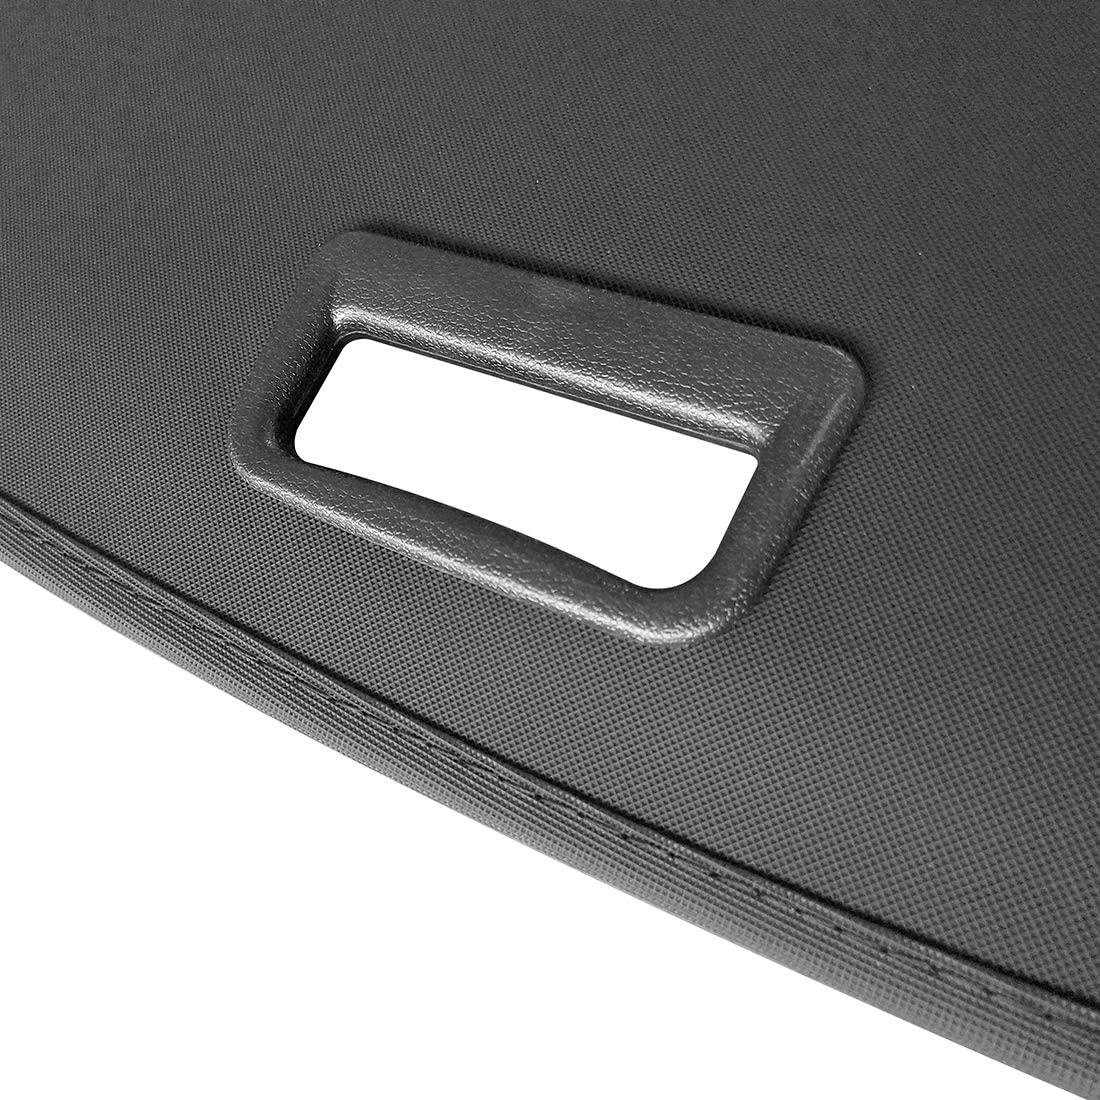 OREALTOOL Black Retractable Cargo Cover Luggage Shade Shield for Subaru Forester 2009-2012 Rear Boot Trunk Parcel Load Shelf Shielding Security Panel Roller Blind